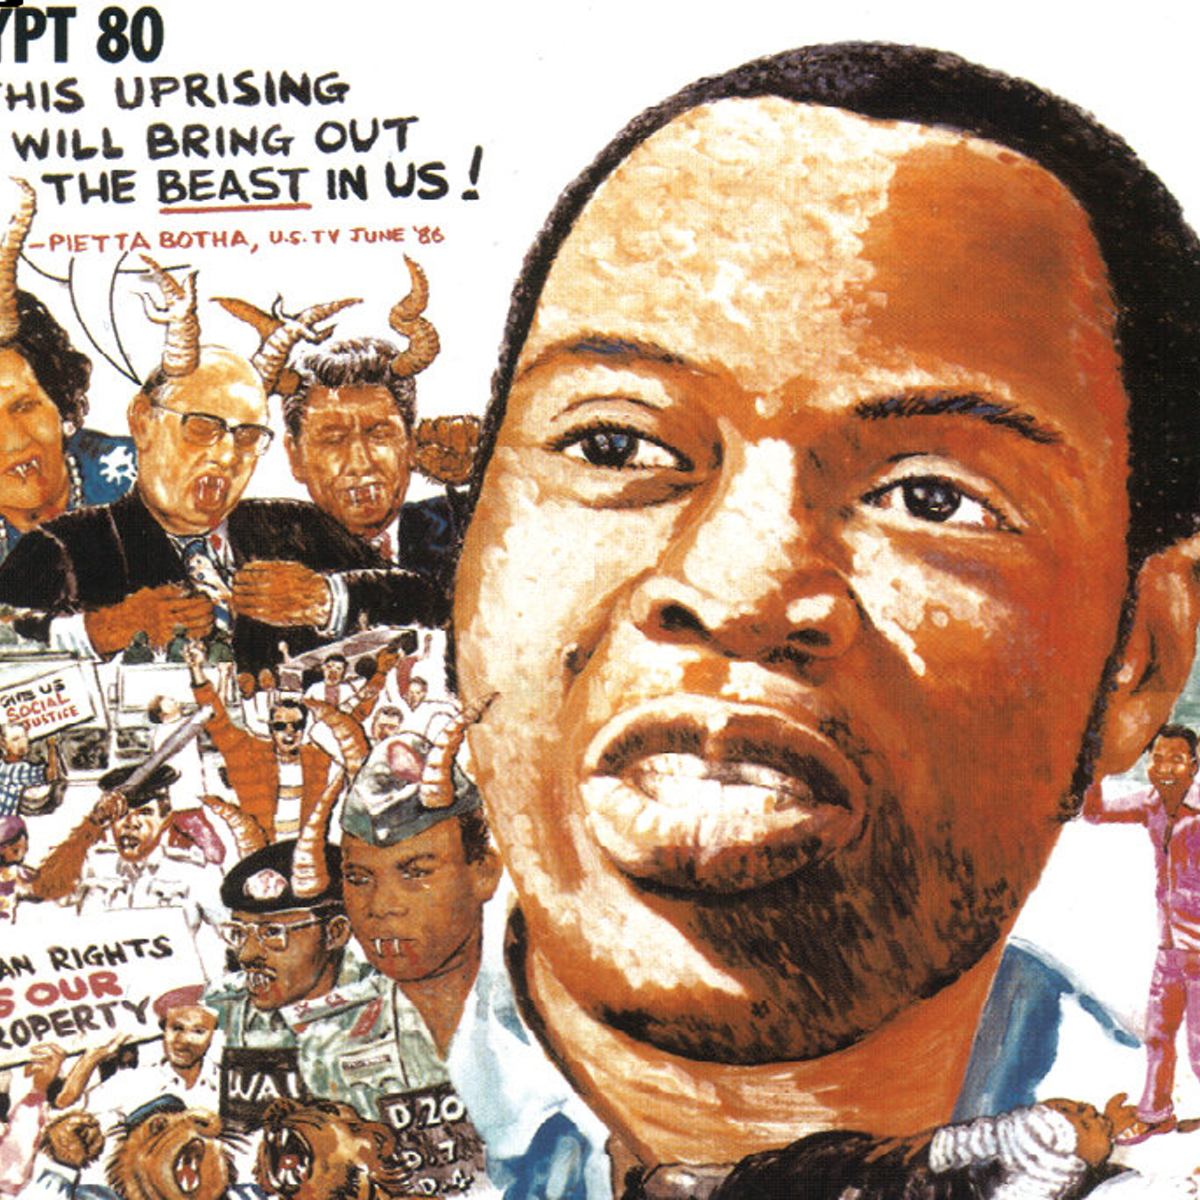 Fela's music can decolonise international law in African universities